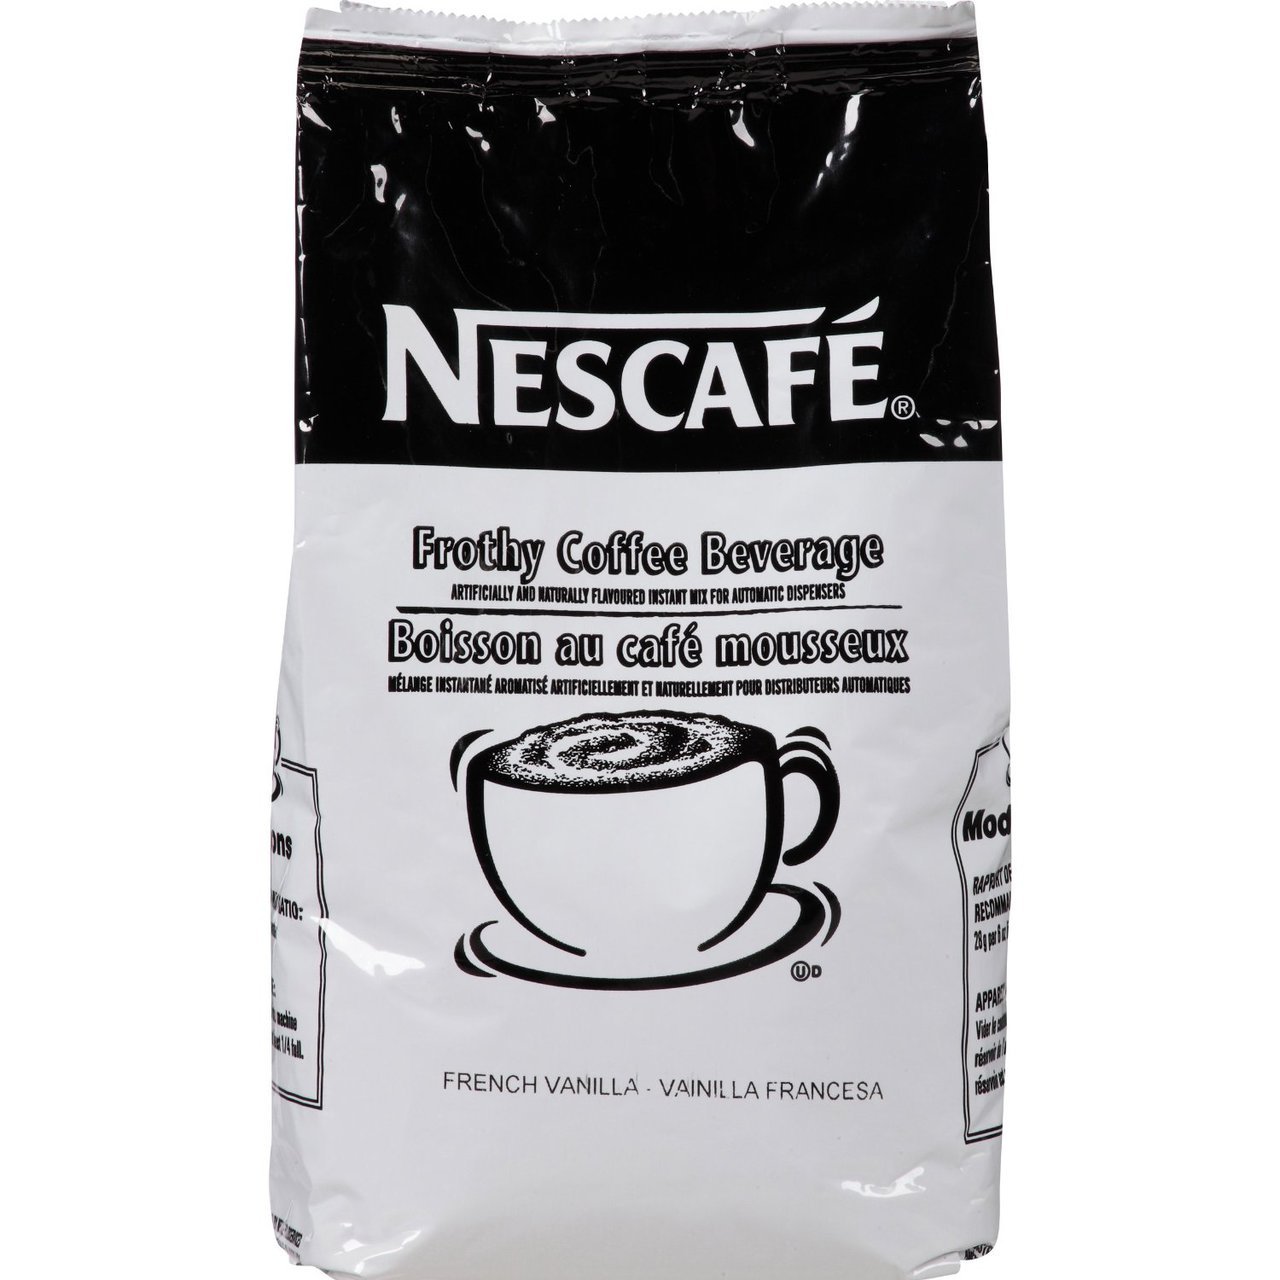 Nescafe Coffee, French Vanilla Cappuccino Mix, 6 Count